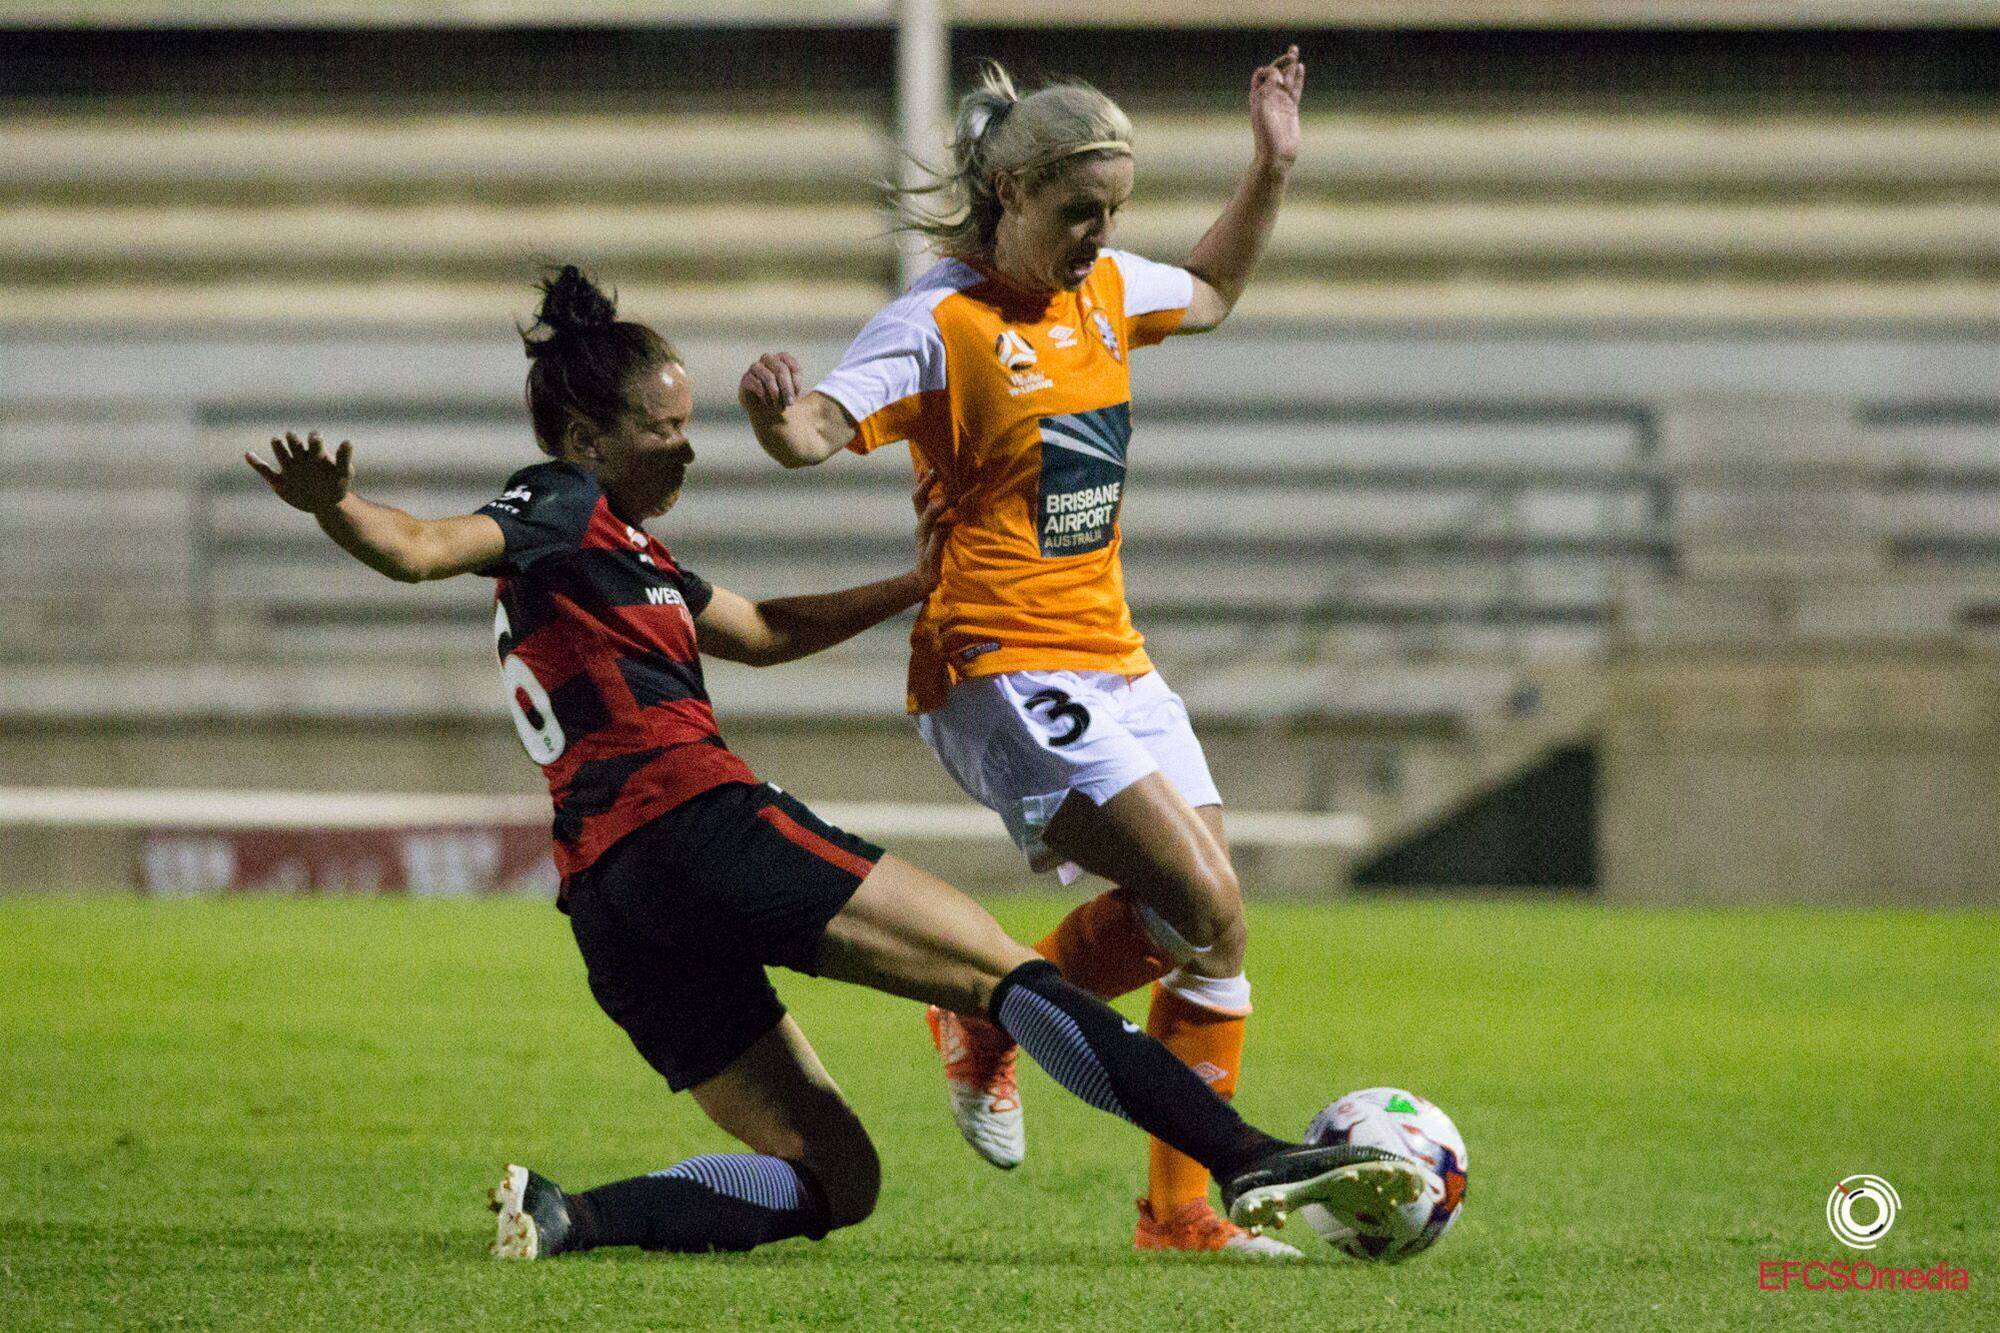 MATCH ANALYSIS: Brisbane Roar bounce back against Wanderers